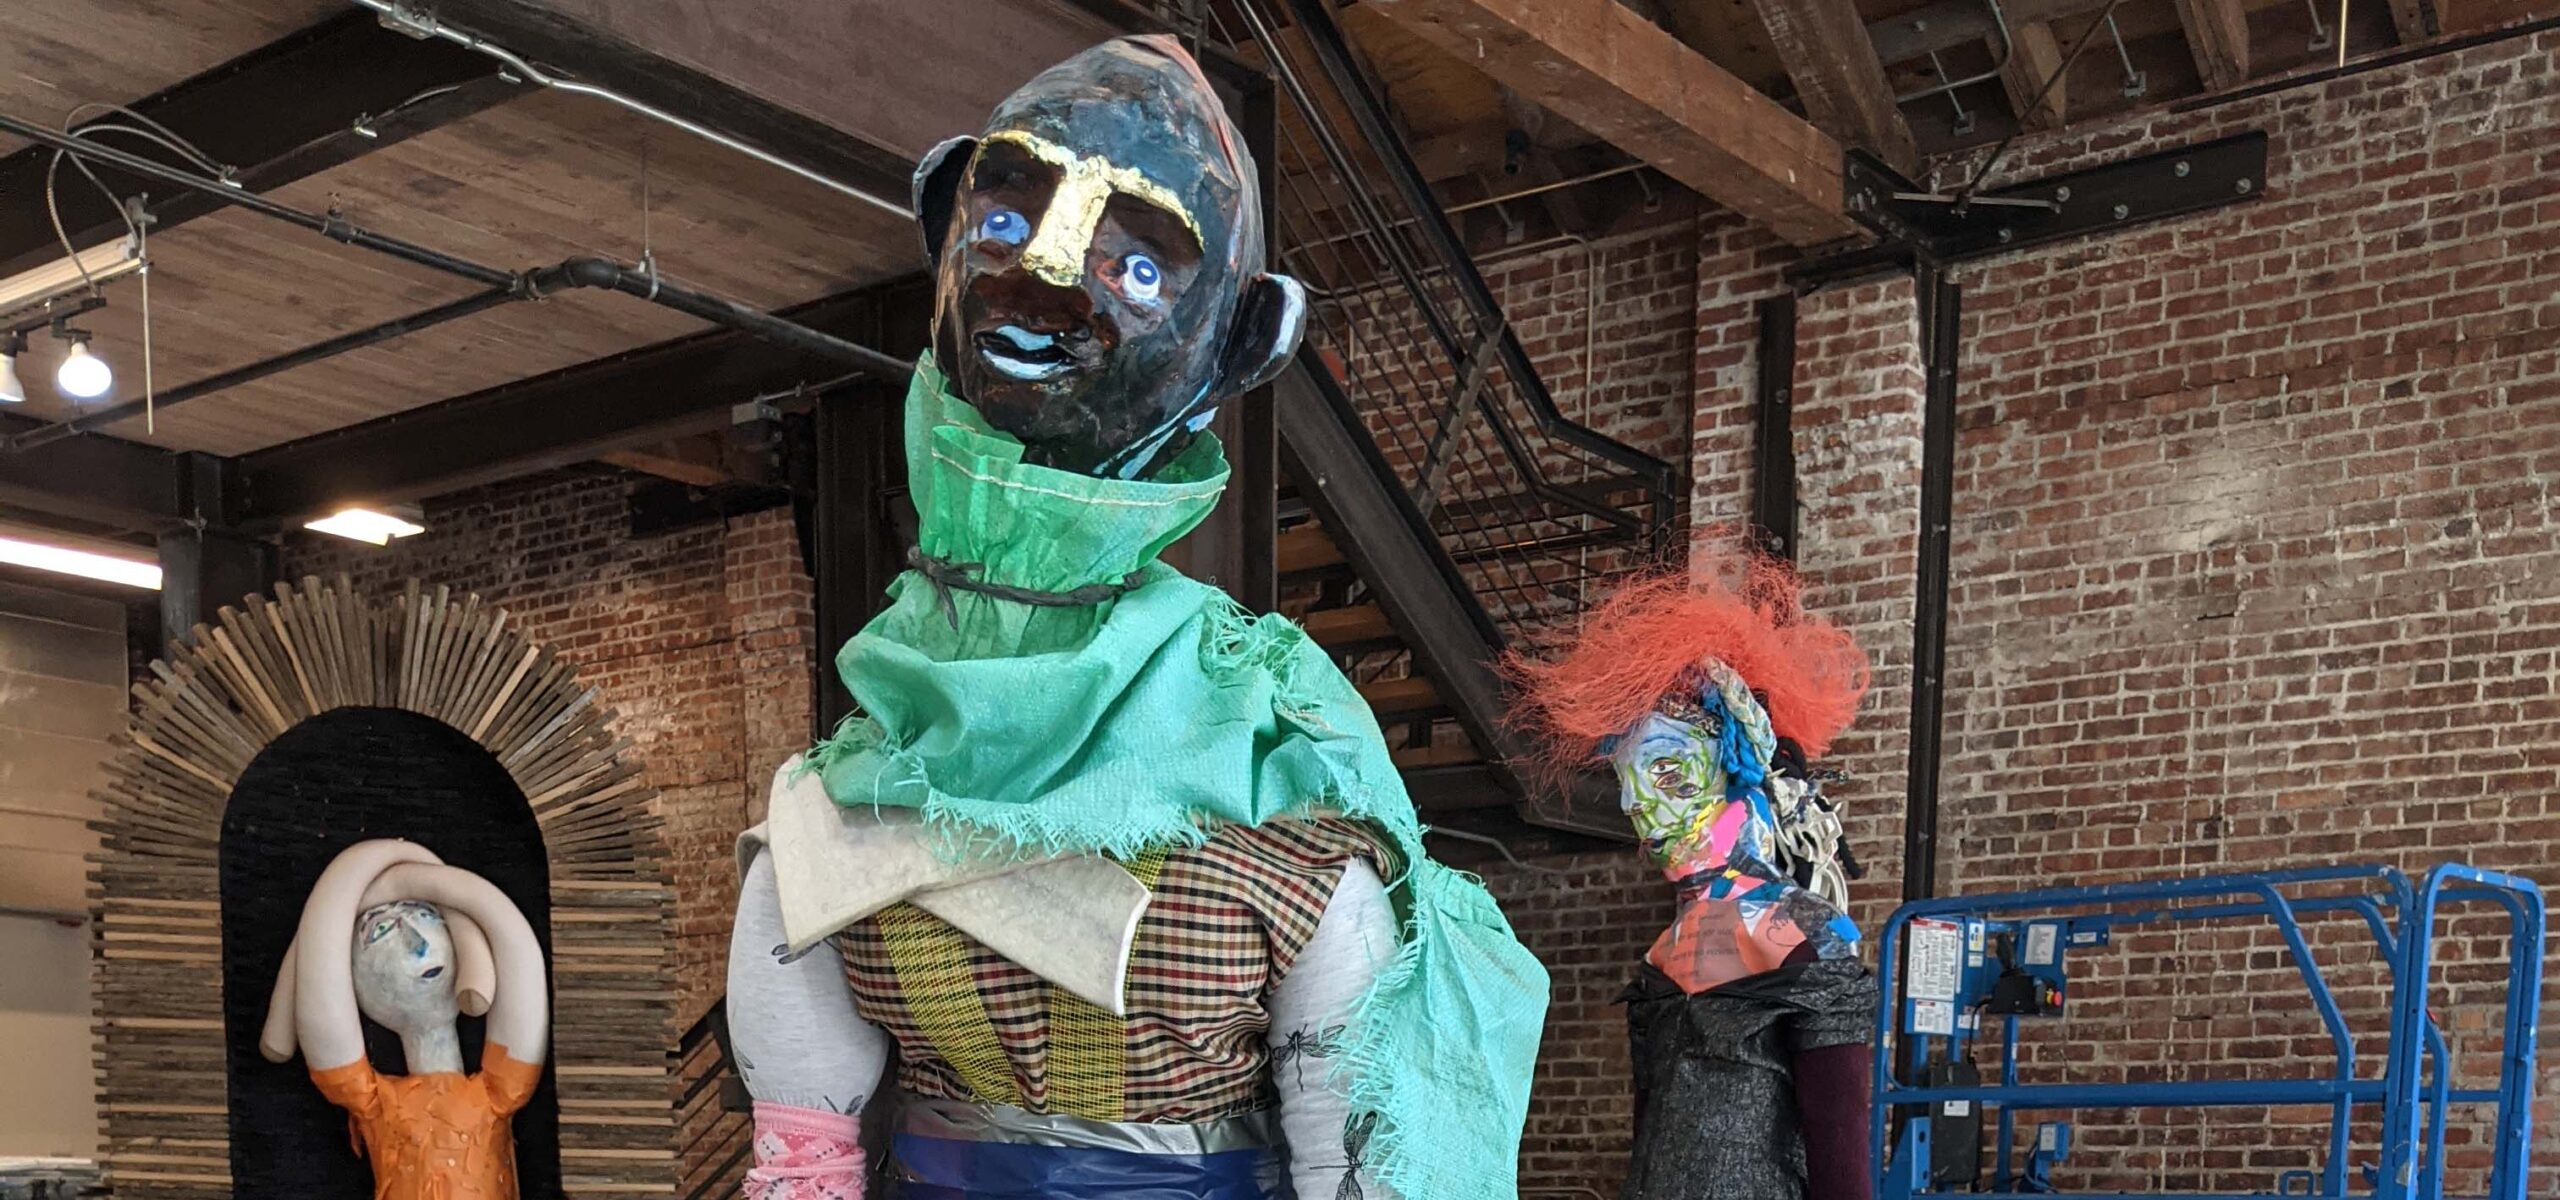 Modern art human-like sculptures made from recycled construction materials.